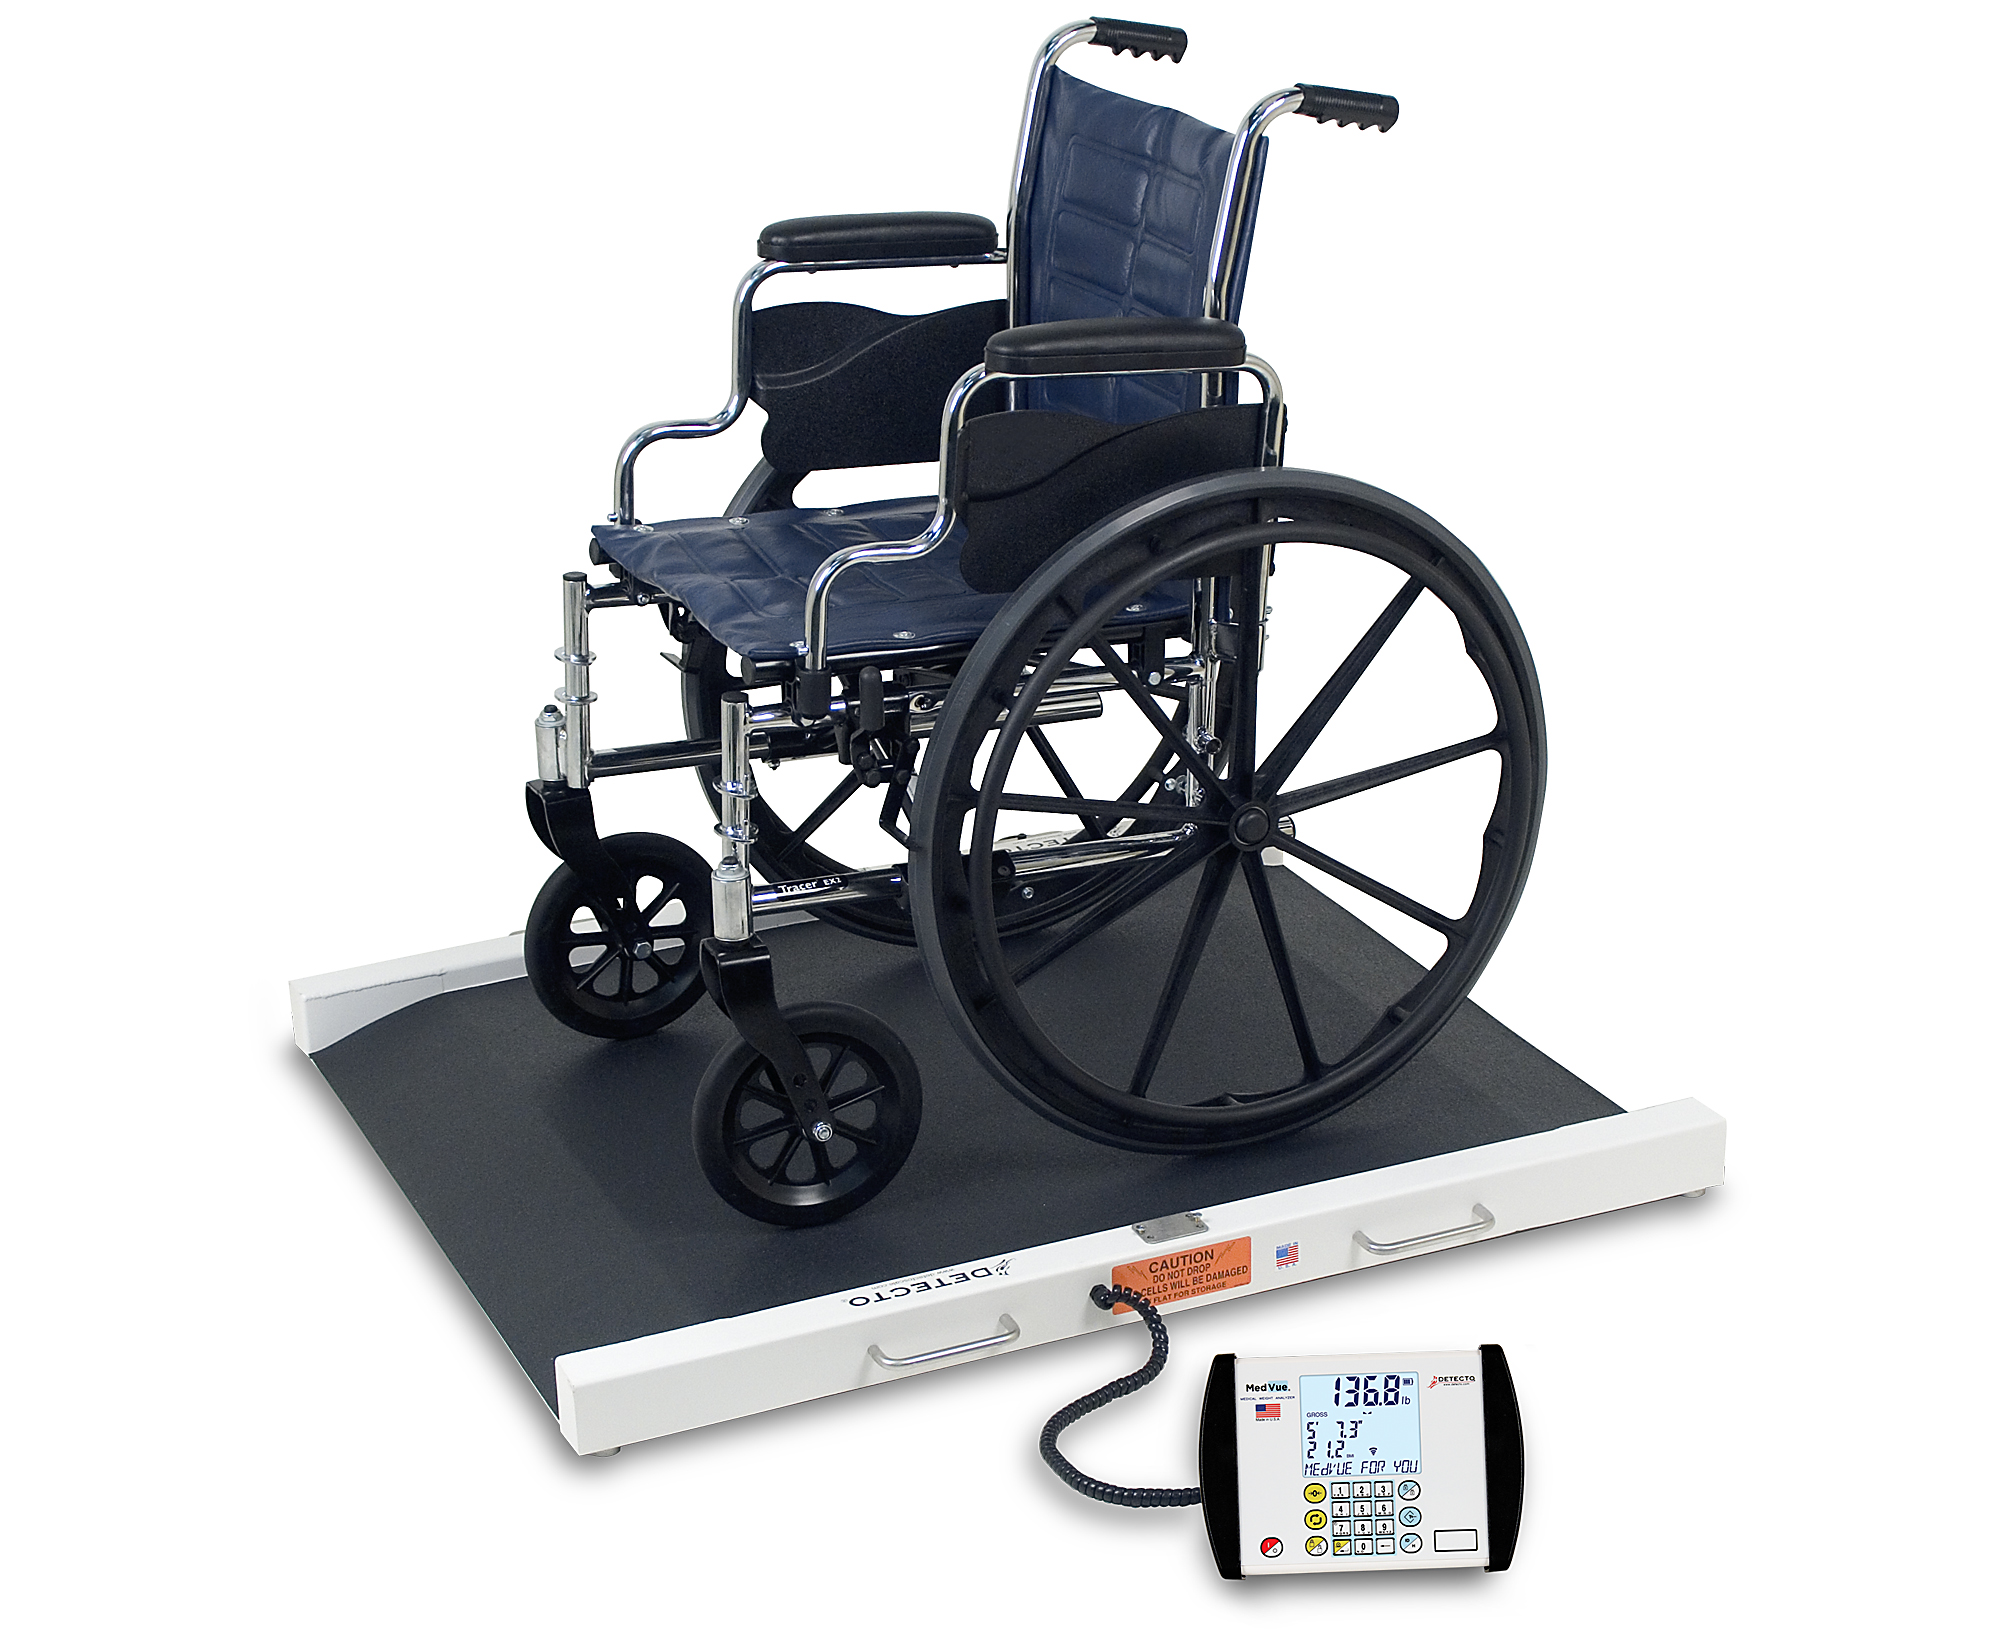 portable wheel chair orthopedic cushion detecto wheelchair scale model 6500 baxter medical 3